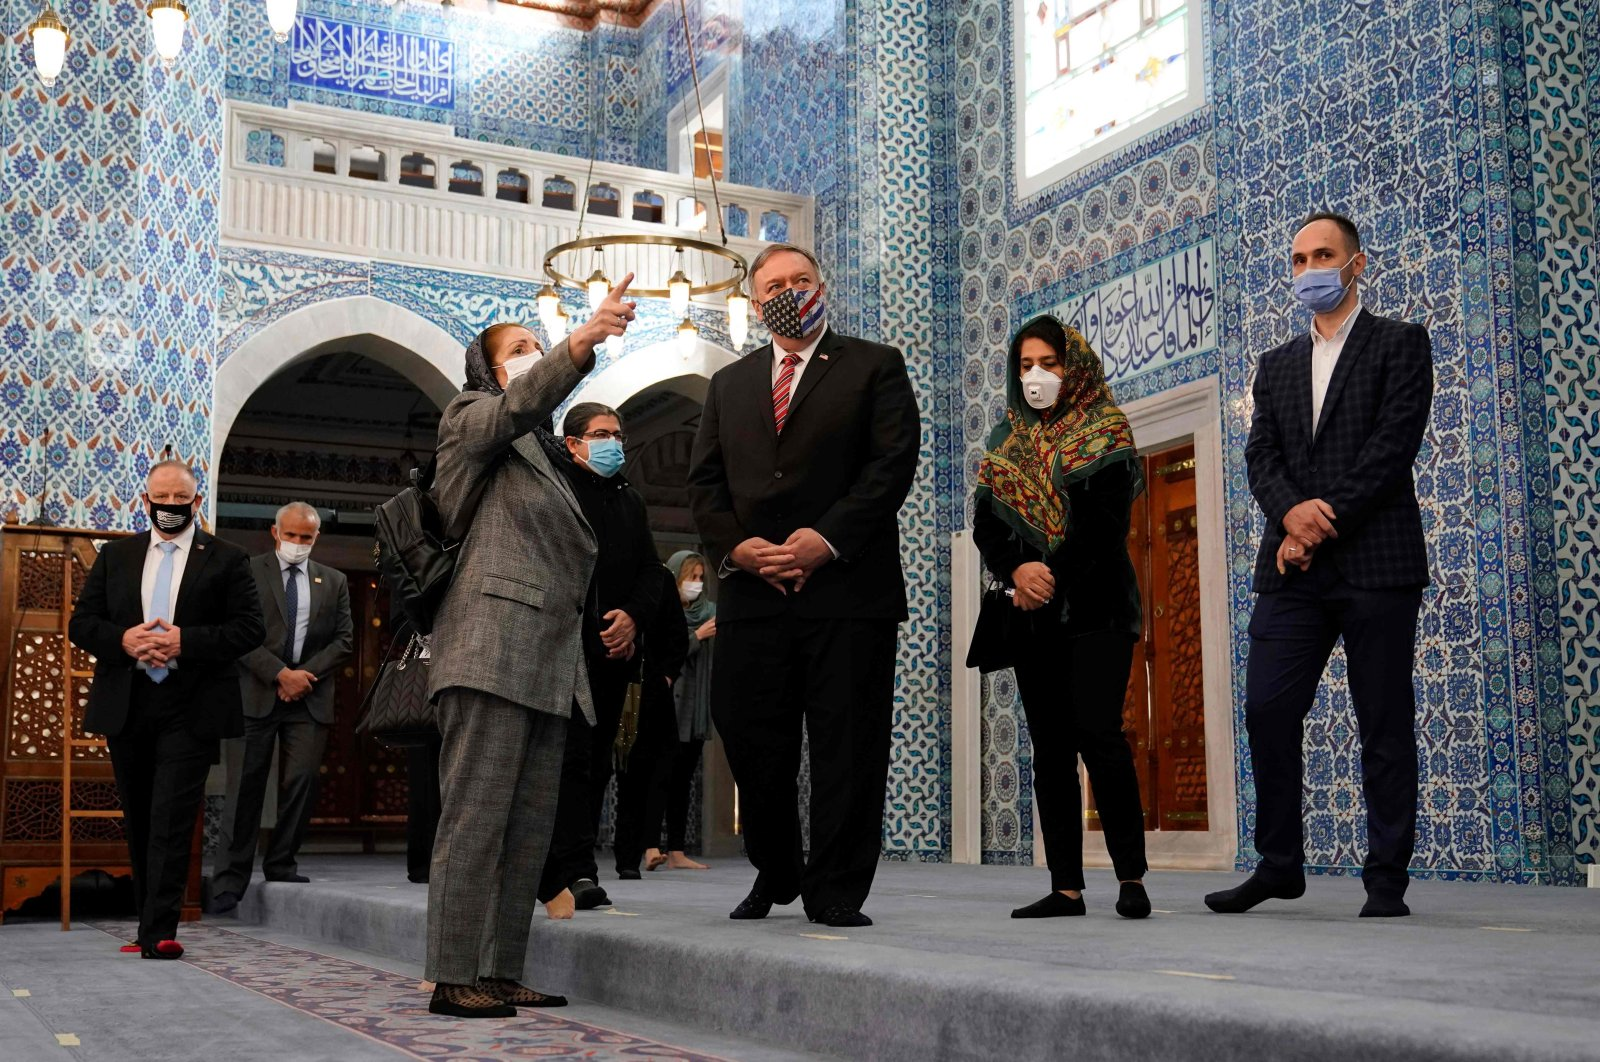 U.S. Secretary of State Mike Pompeo (C) listens to officials as he visits the Rüstem Pasha Mosque, Istanbul, Turkey, Nov. 17, 2020. (AFP Photo)